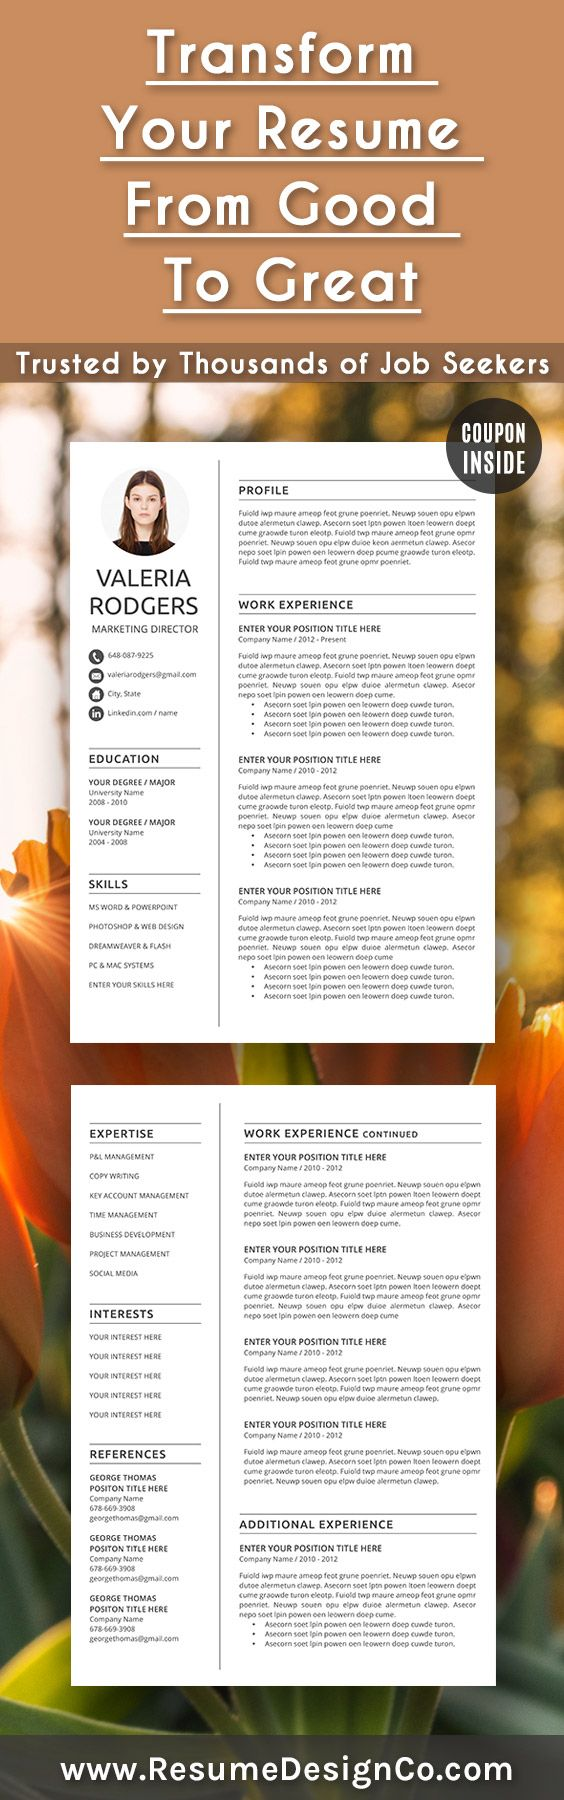 Transform your resume from good to great